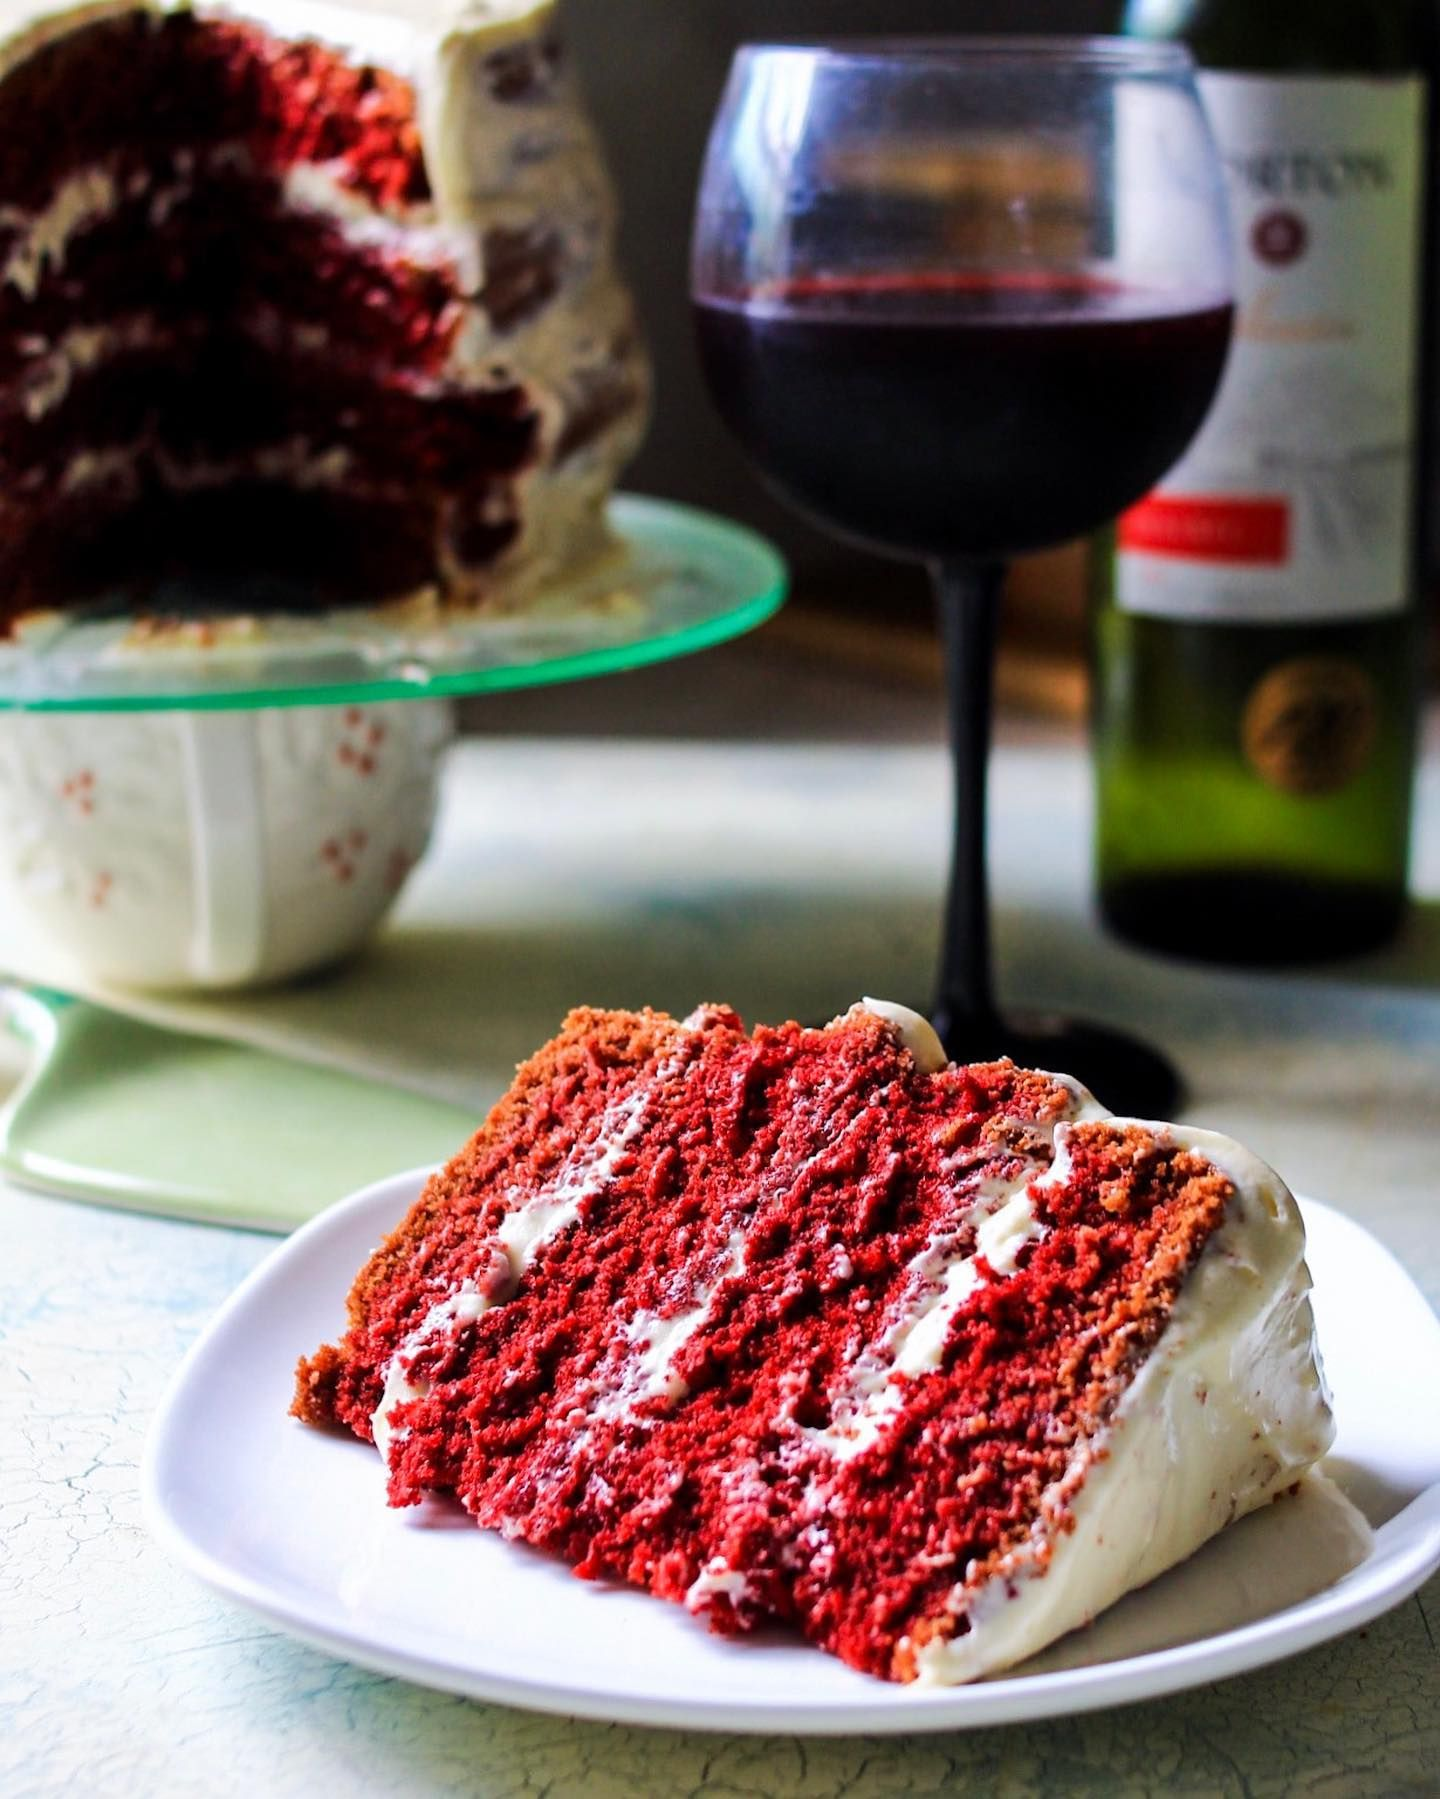 It S Nationalwineday And I Can T Think Of A Better Pairing For A Glass Of Red Wine Than My Gluten Free Red Velvet Ca In 2020 Gluten Free Red Velvet Cake Food